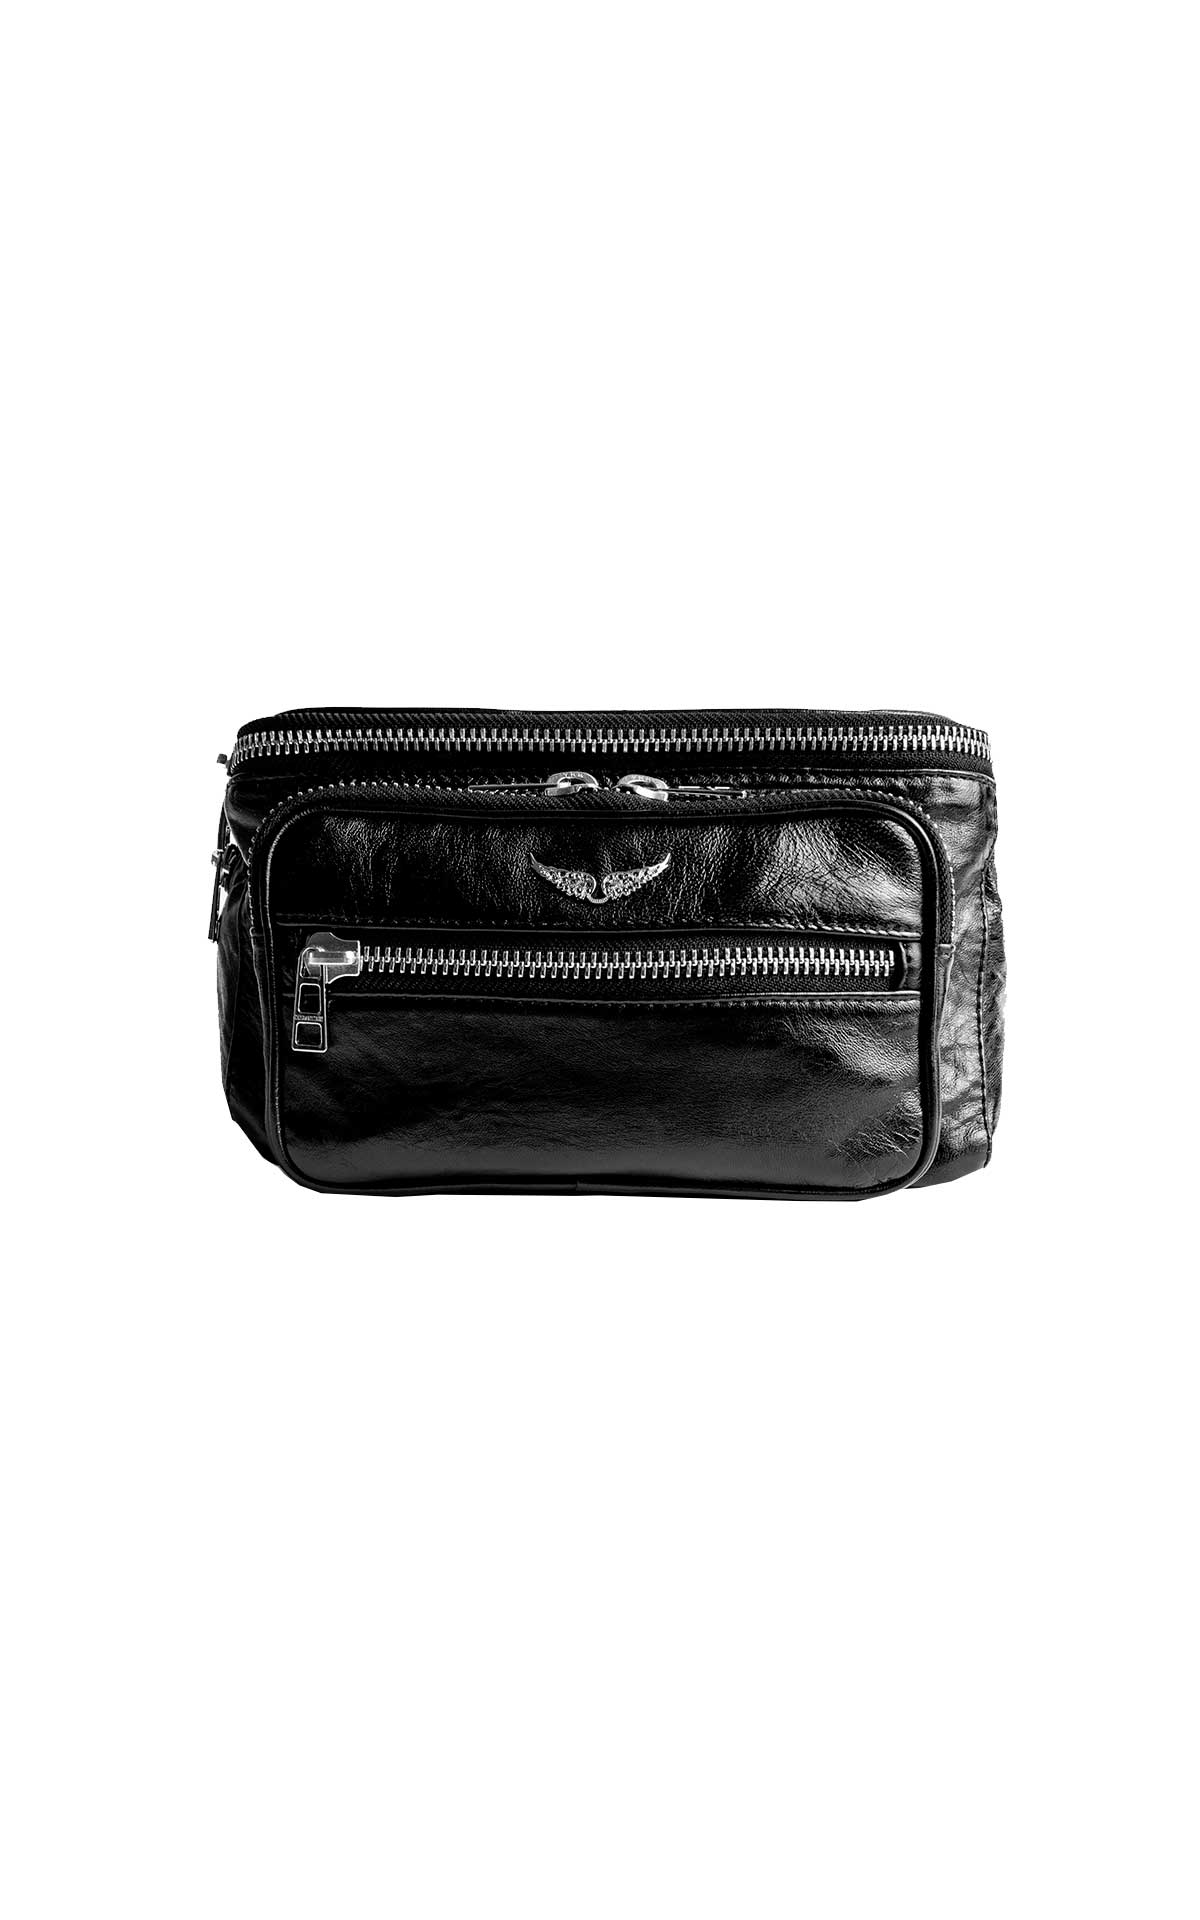 Black leather bum bag Zadig&Voltaire